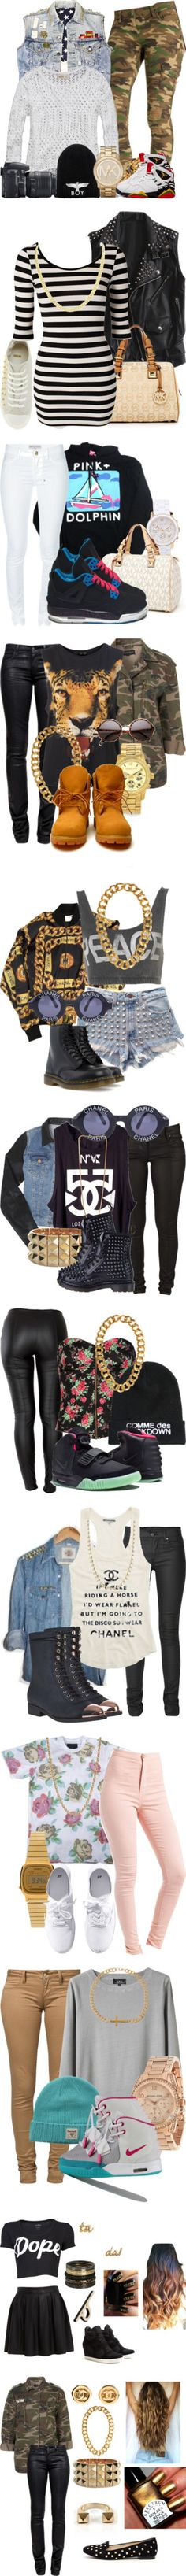 """Swag"" by mrkr-lawson ❤ liked on Polyvore"